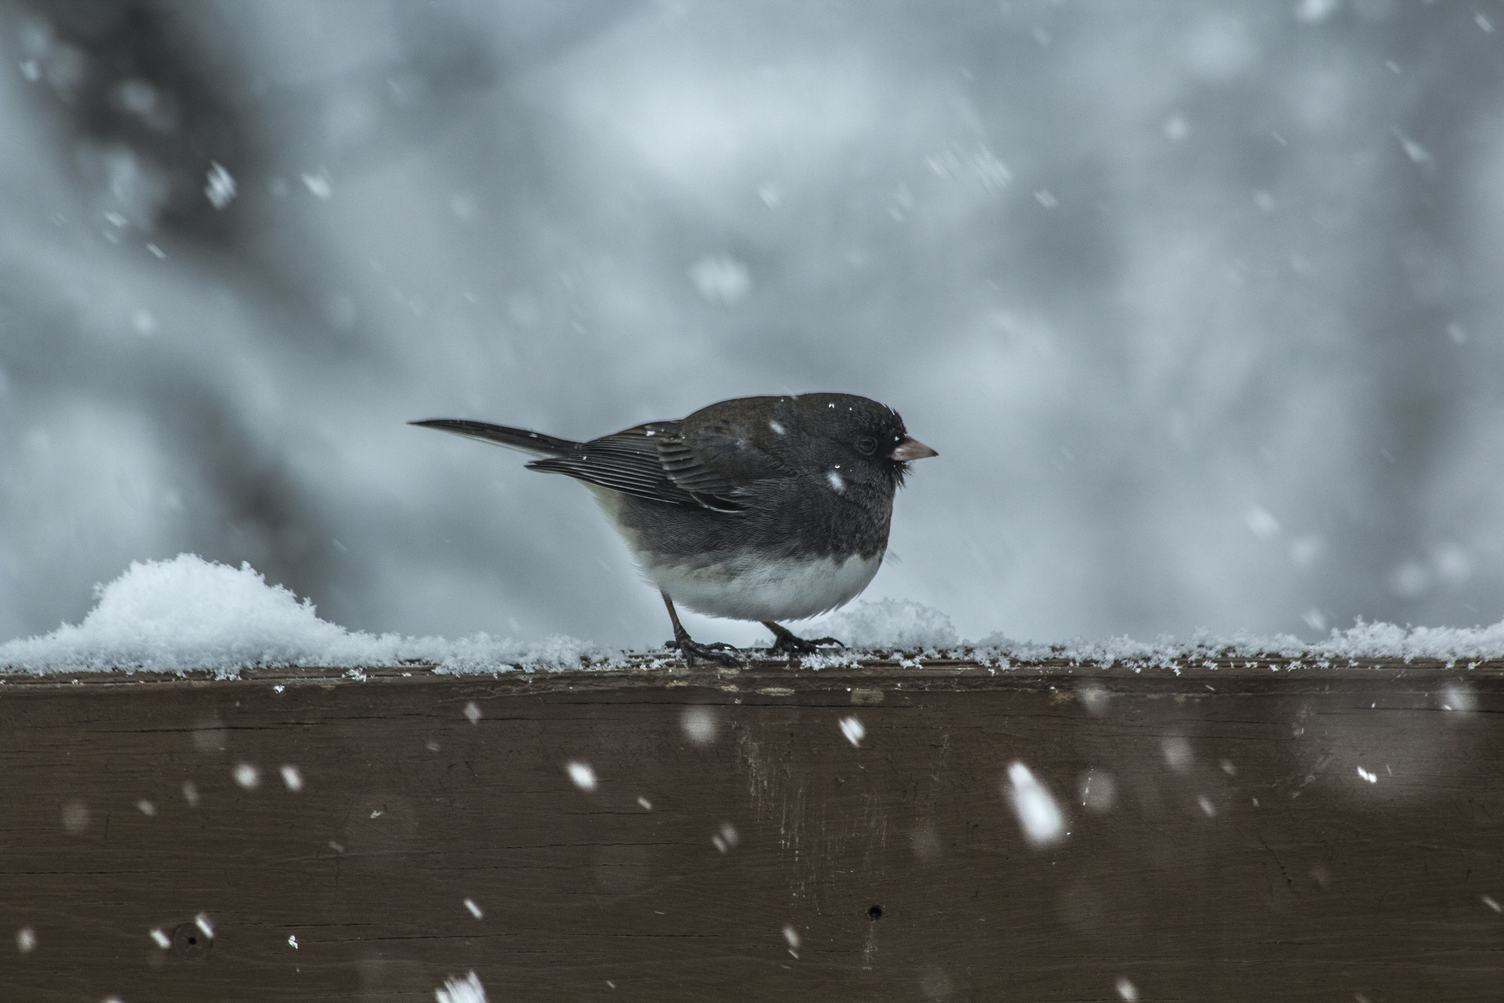 Small Bird with White Belly on a Wooden Railing, Snowy Day